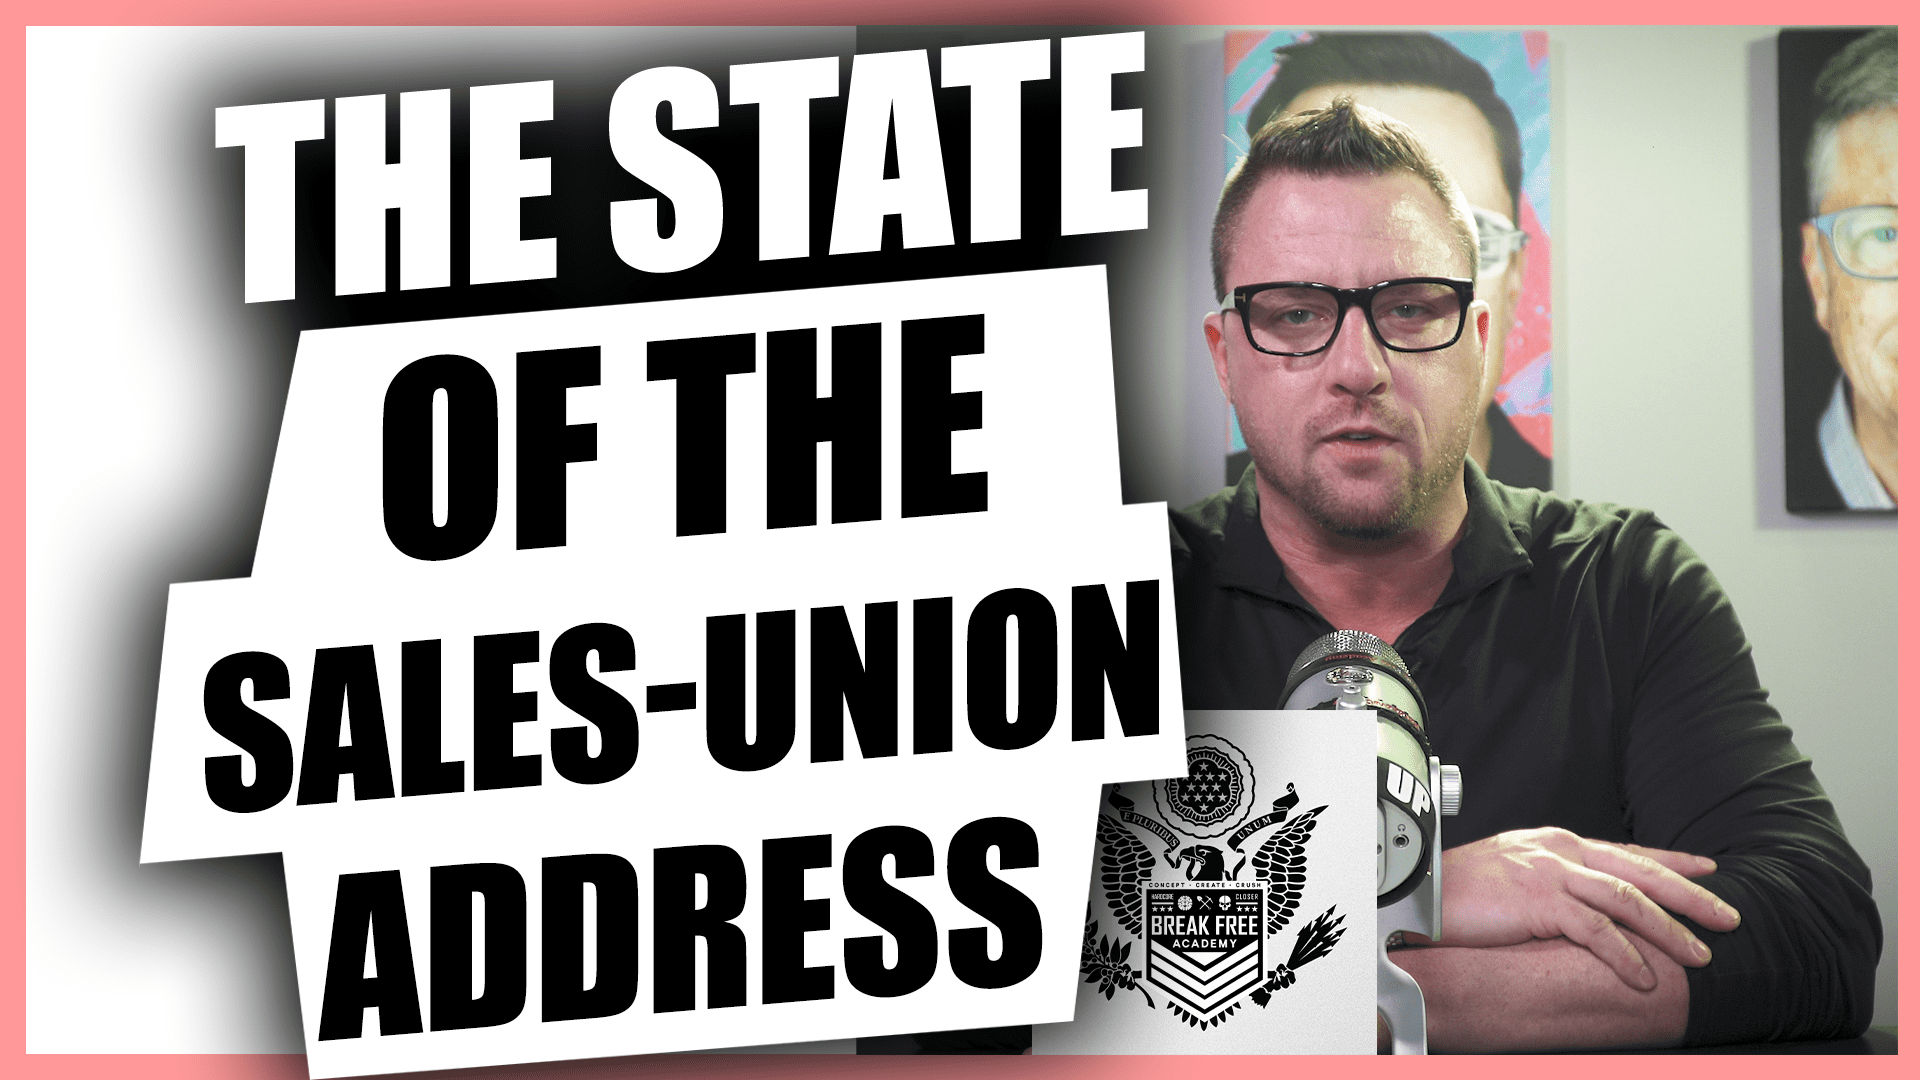 The states of the sales union address